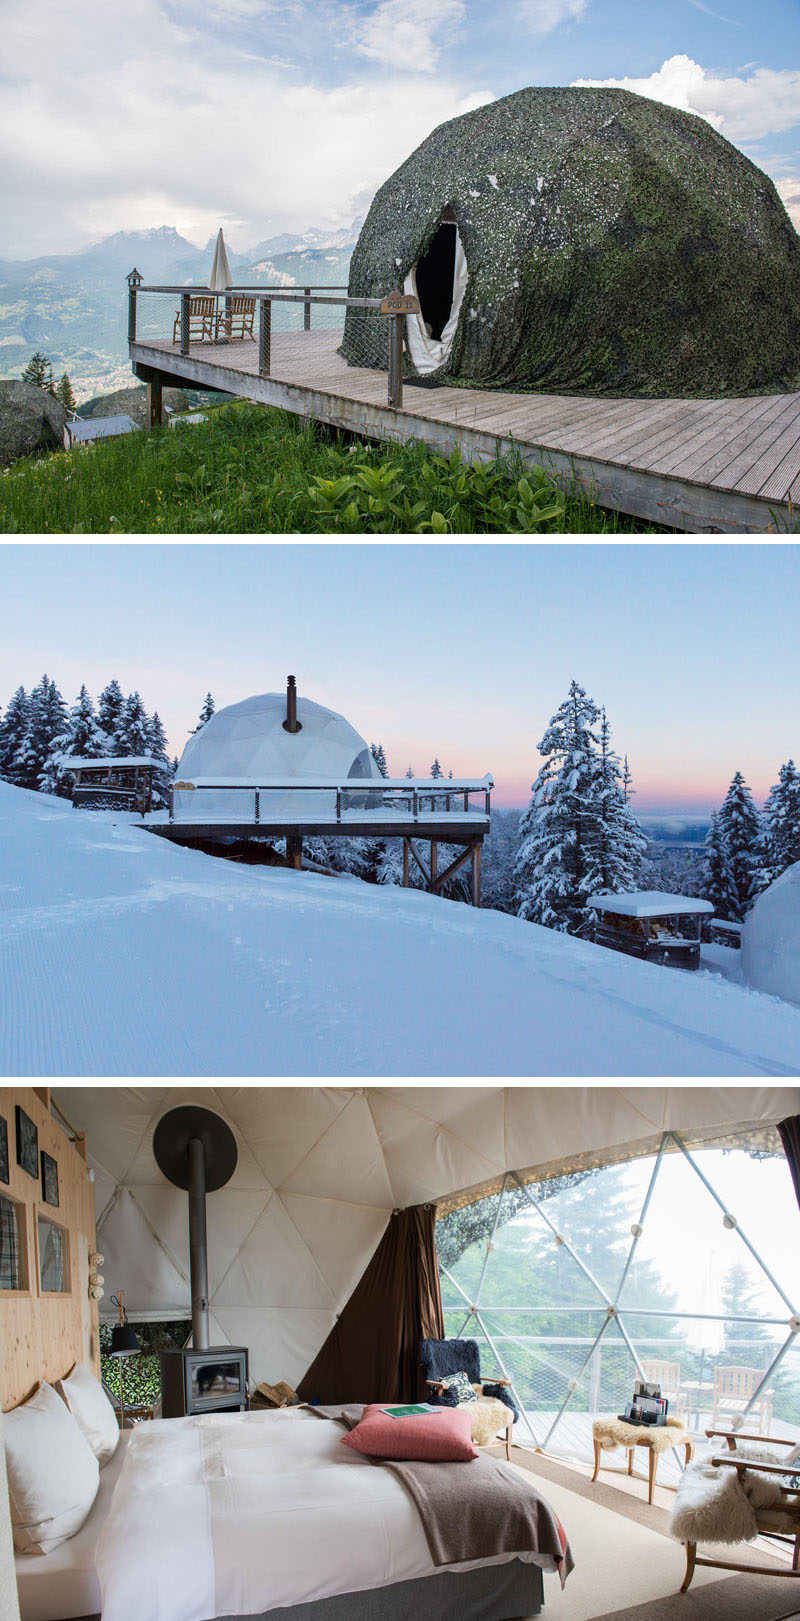 10 Glamping Destinations For People Who Want To Go Camping But Need The Luxuries Of A Hotel // Whitepod Eco-luxury Hotel - Les Giettes, Switzerland